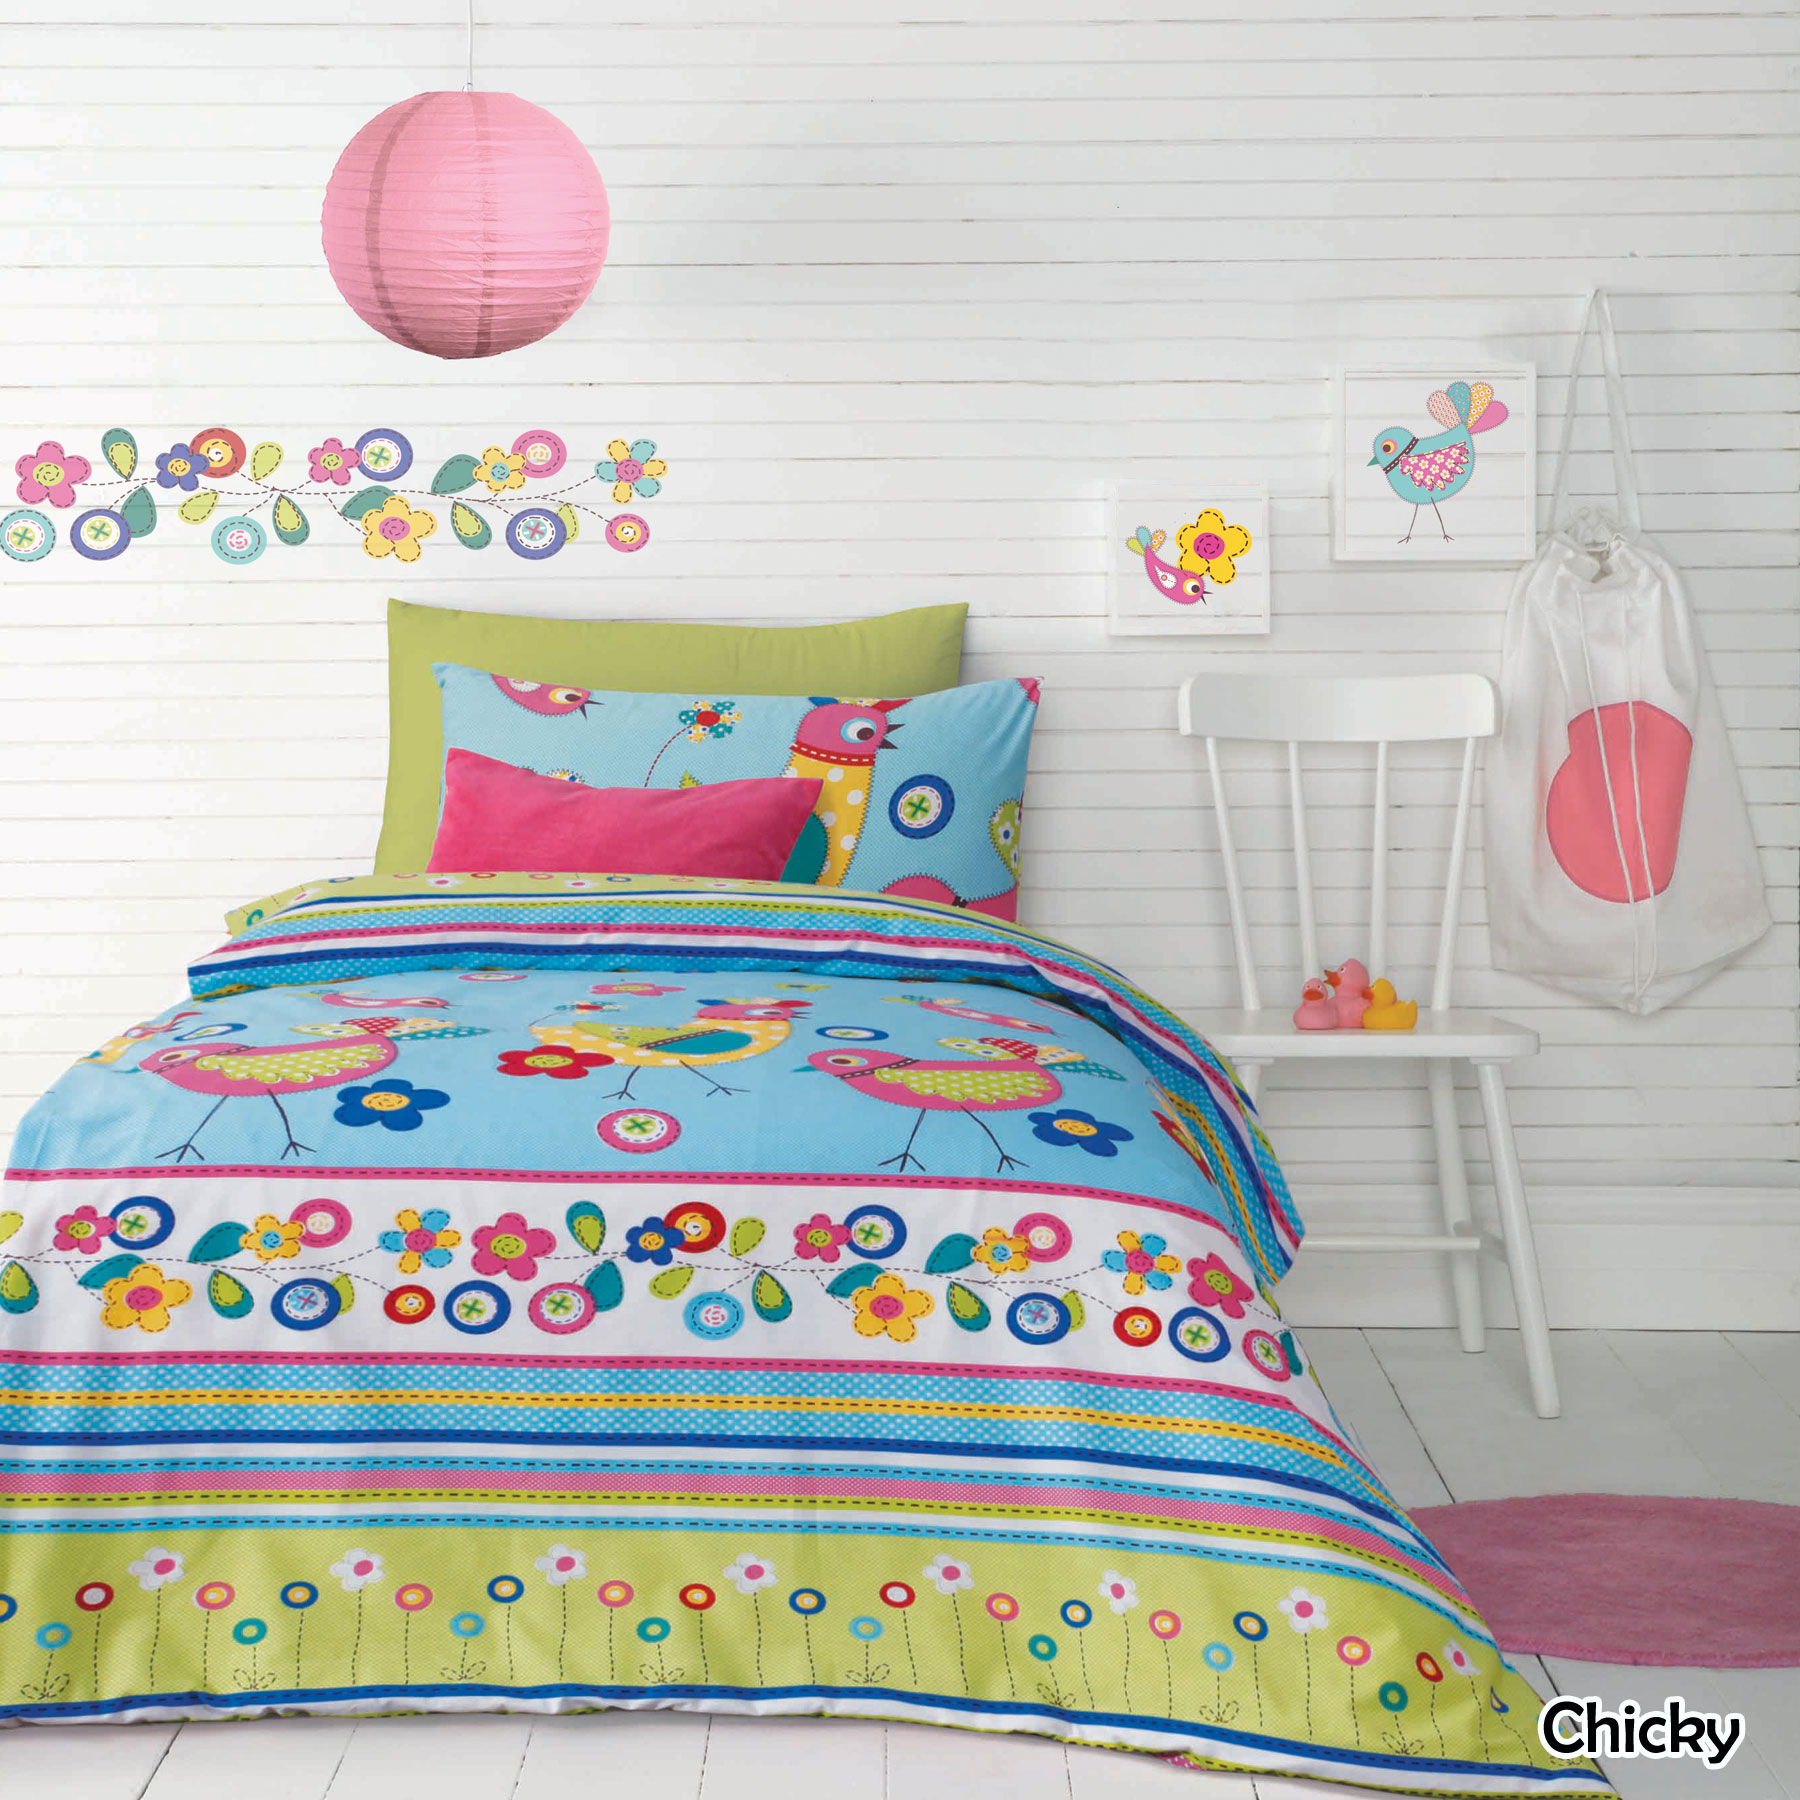 Boys Double Quilt Cover Adorable Kids Children Girls Boys Quilt Cover Set Chicky By Ardor